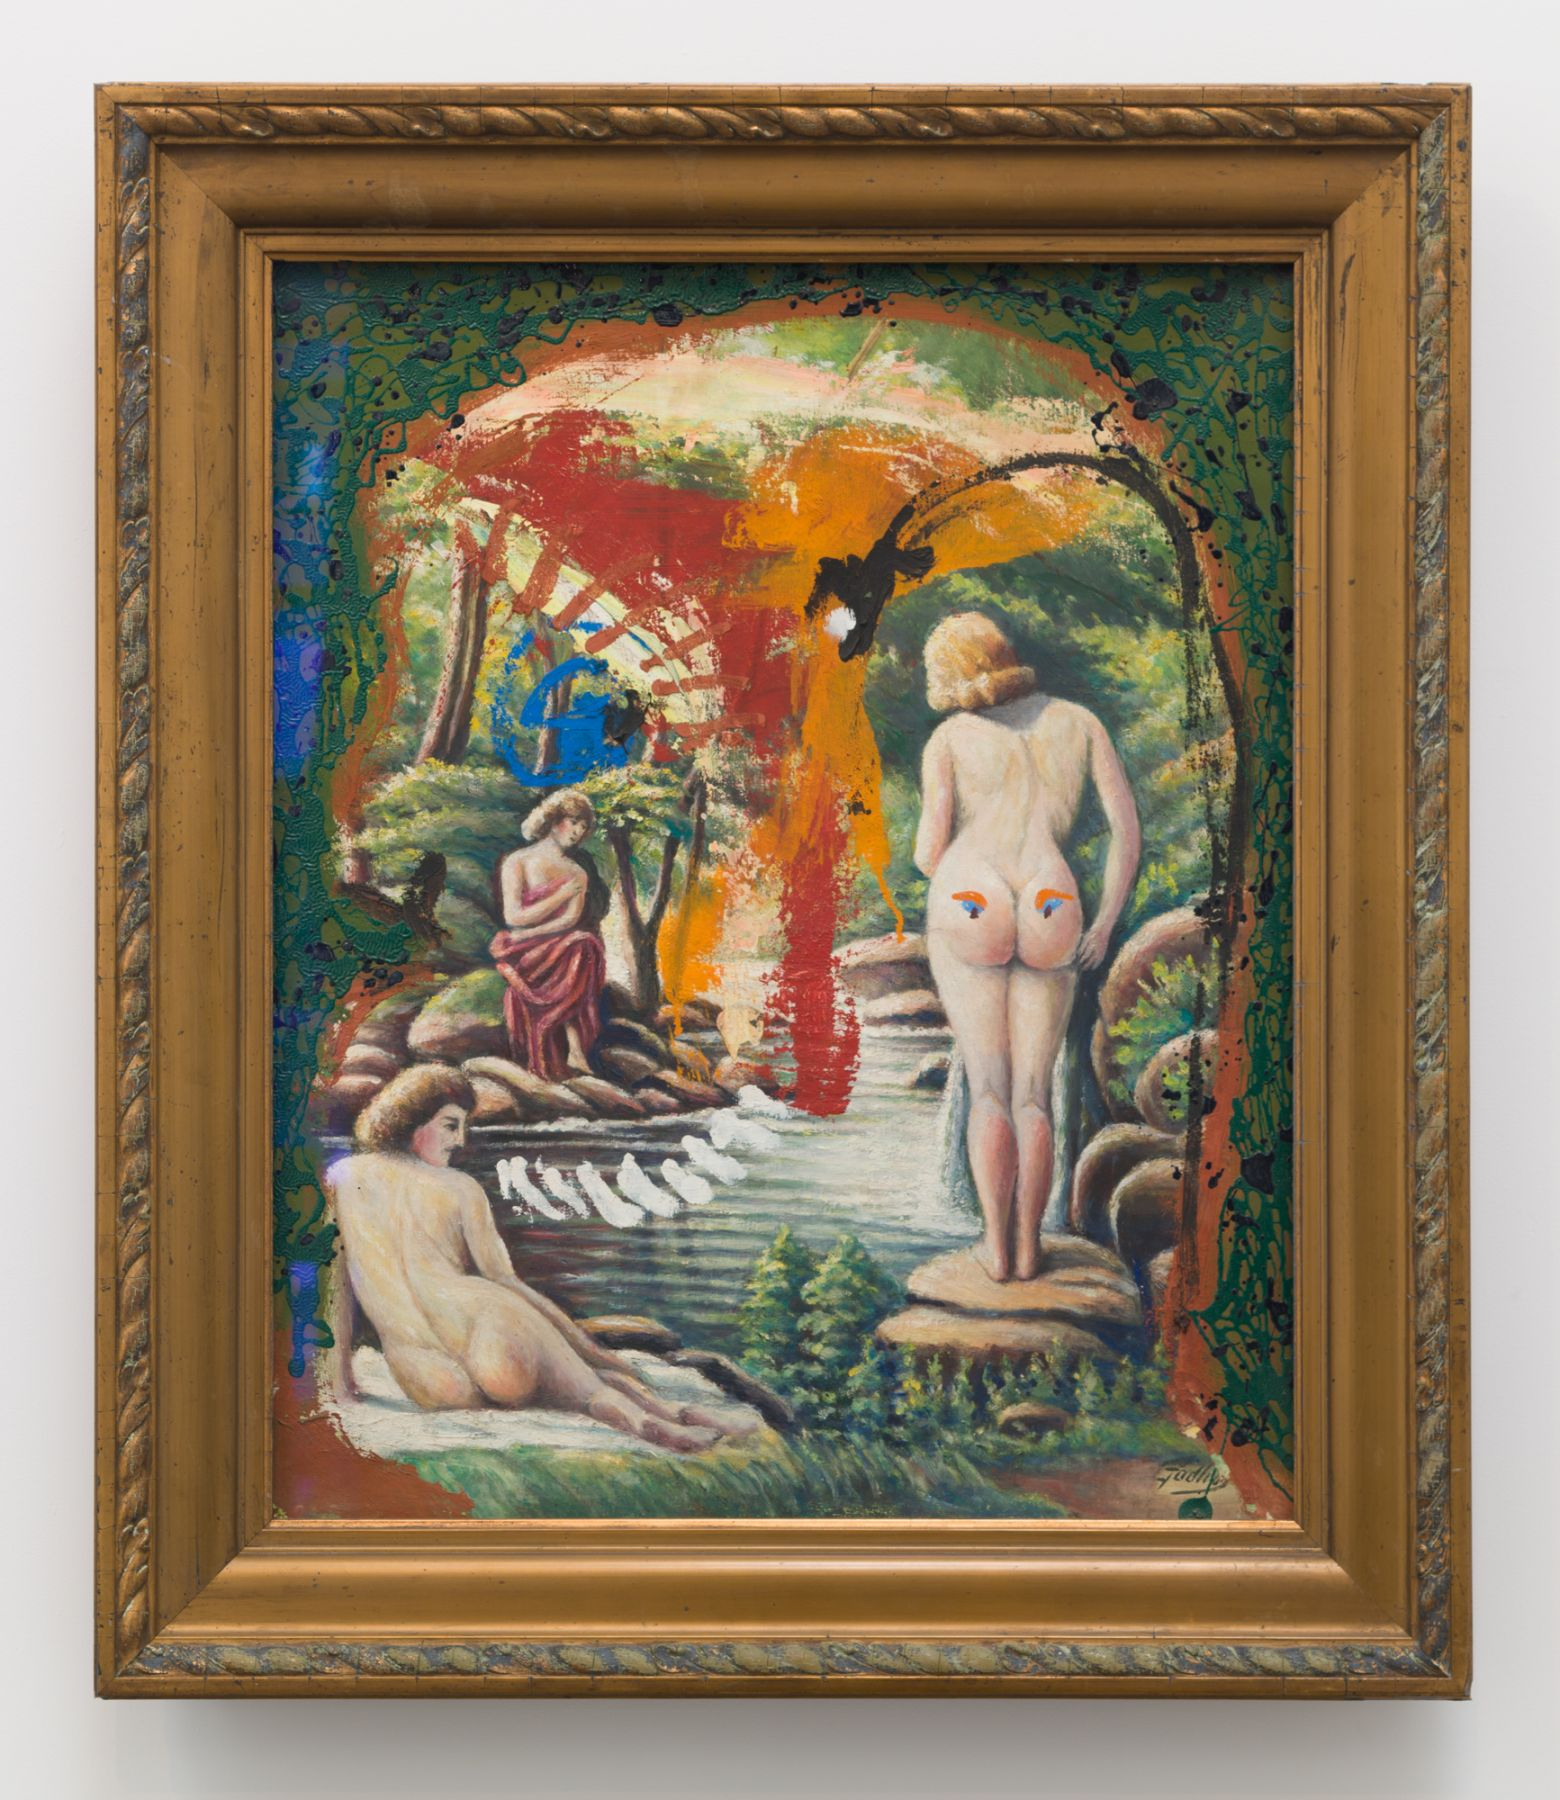 Asger Jorn, Untitled (Bathers)